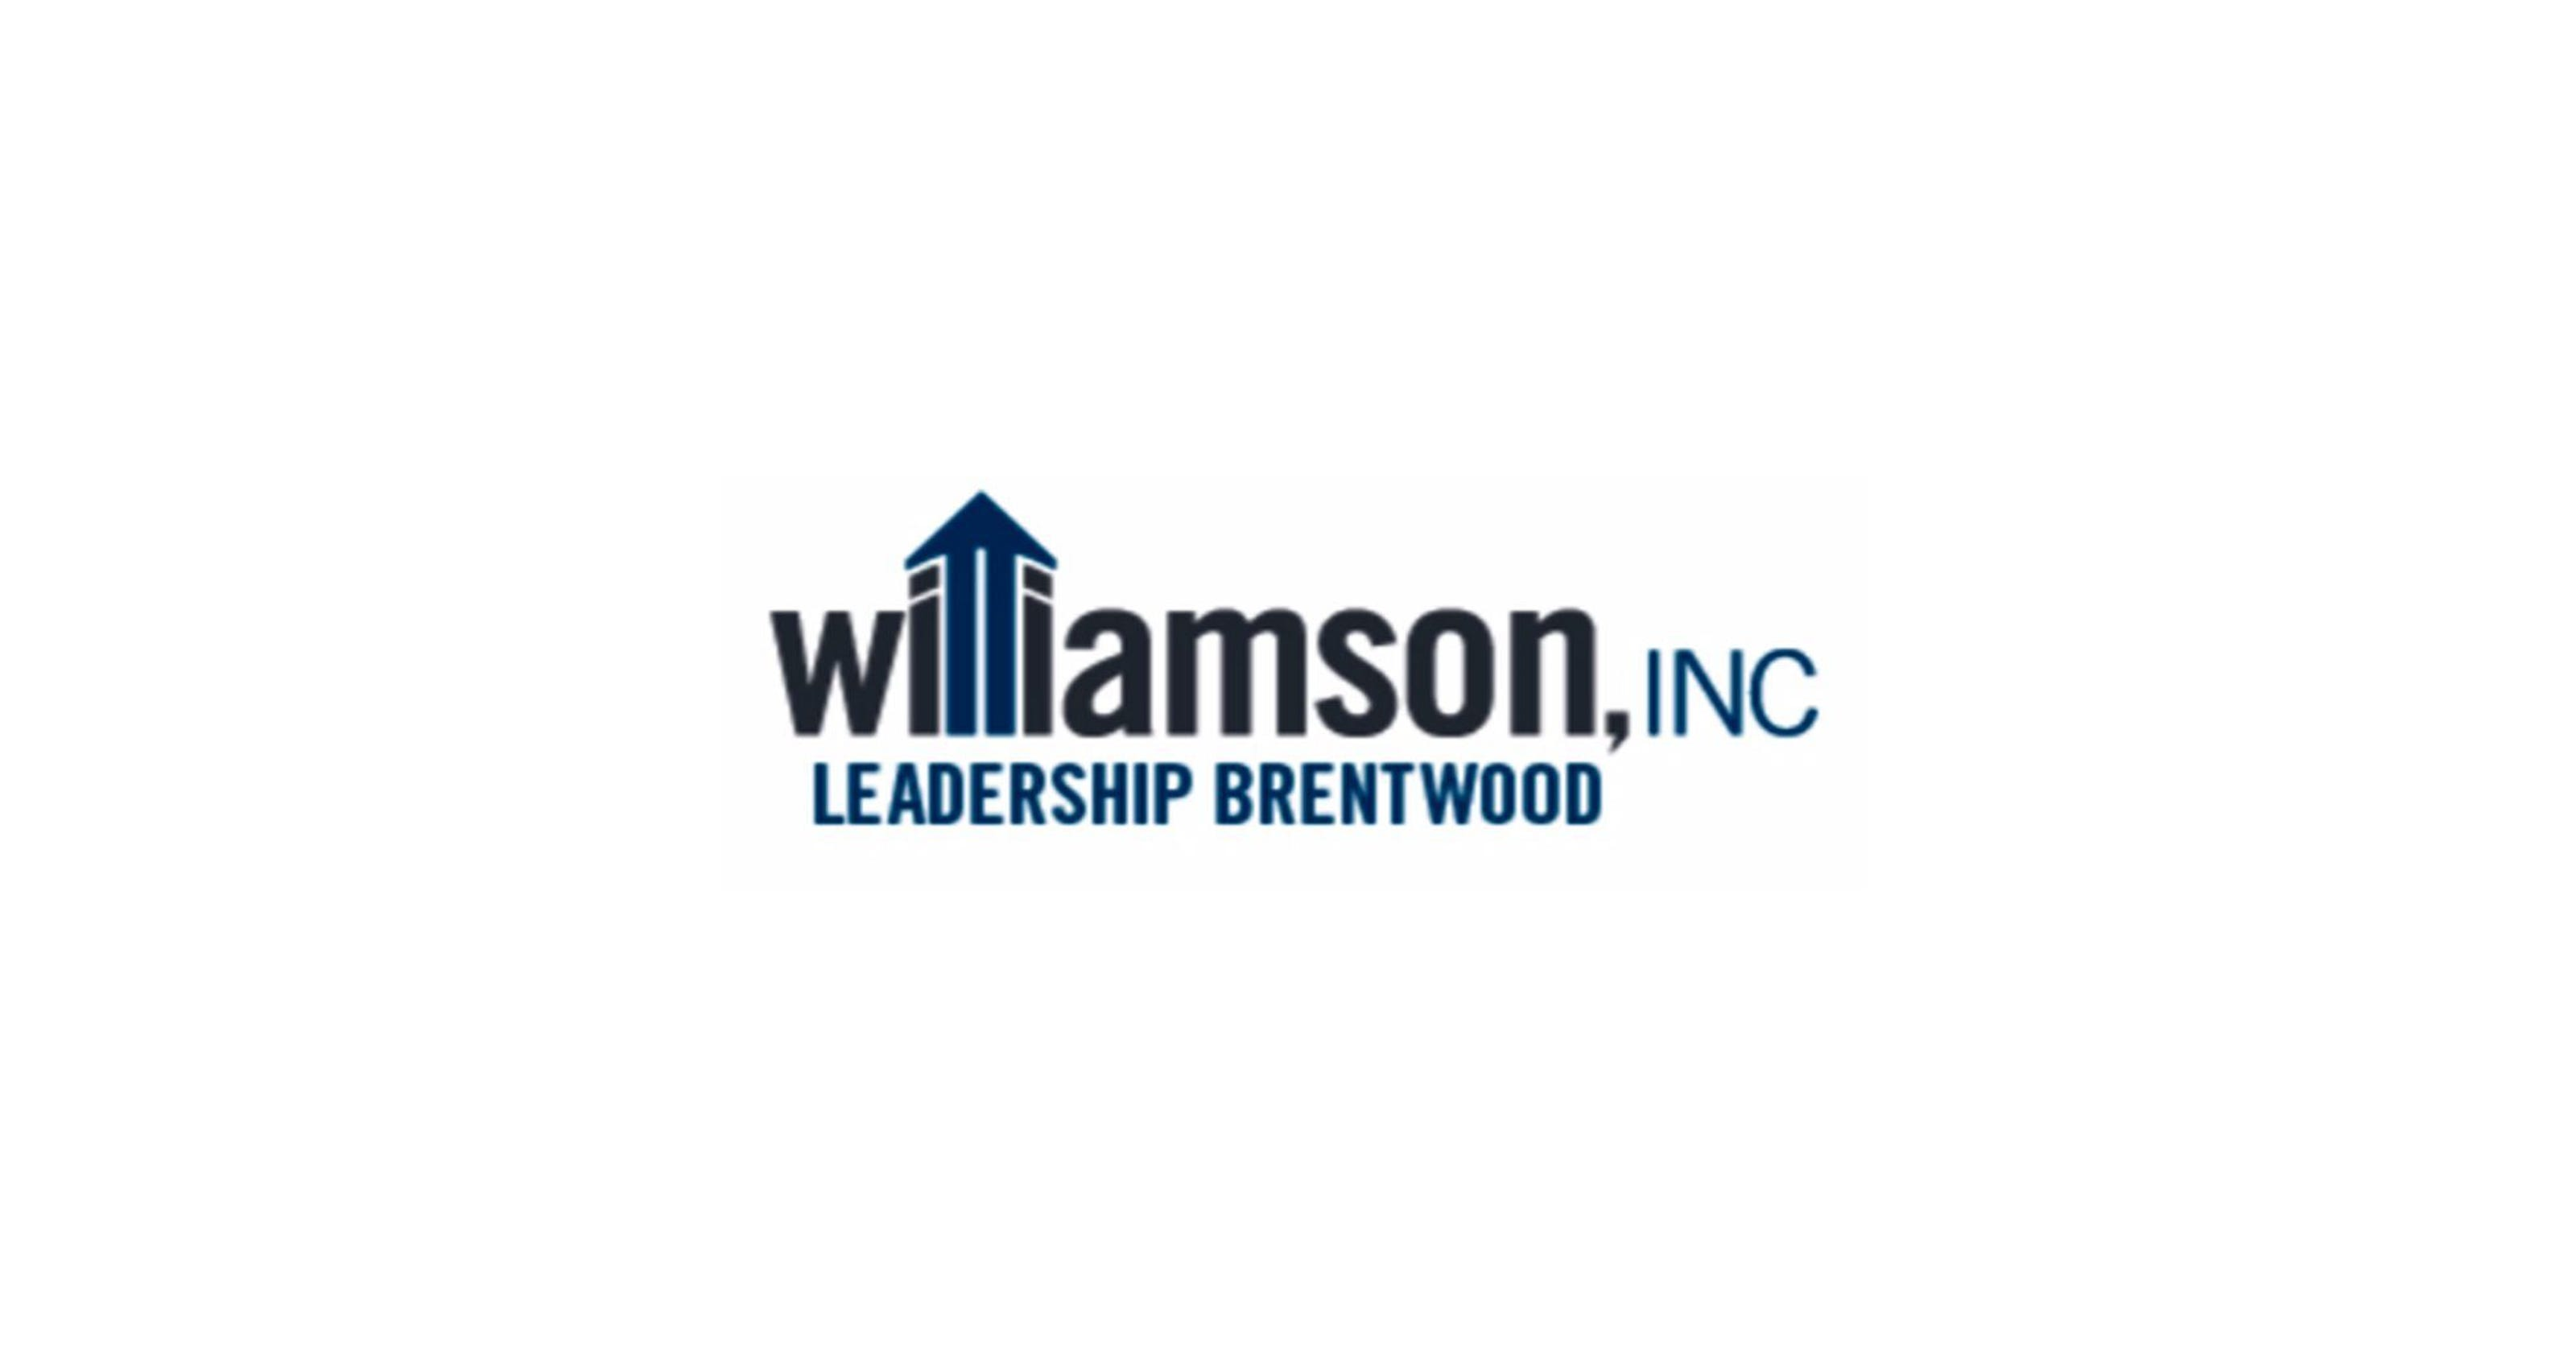 Leadership Brentwood announces cl of 2019 on